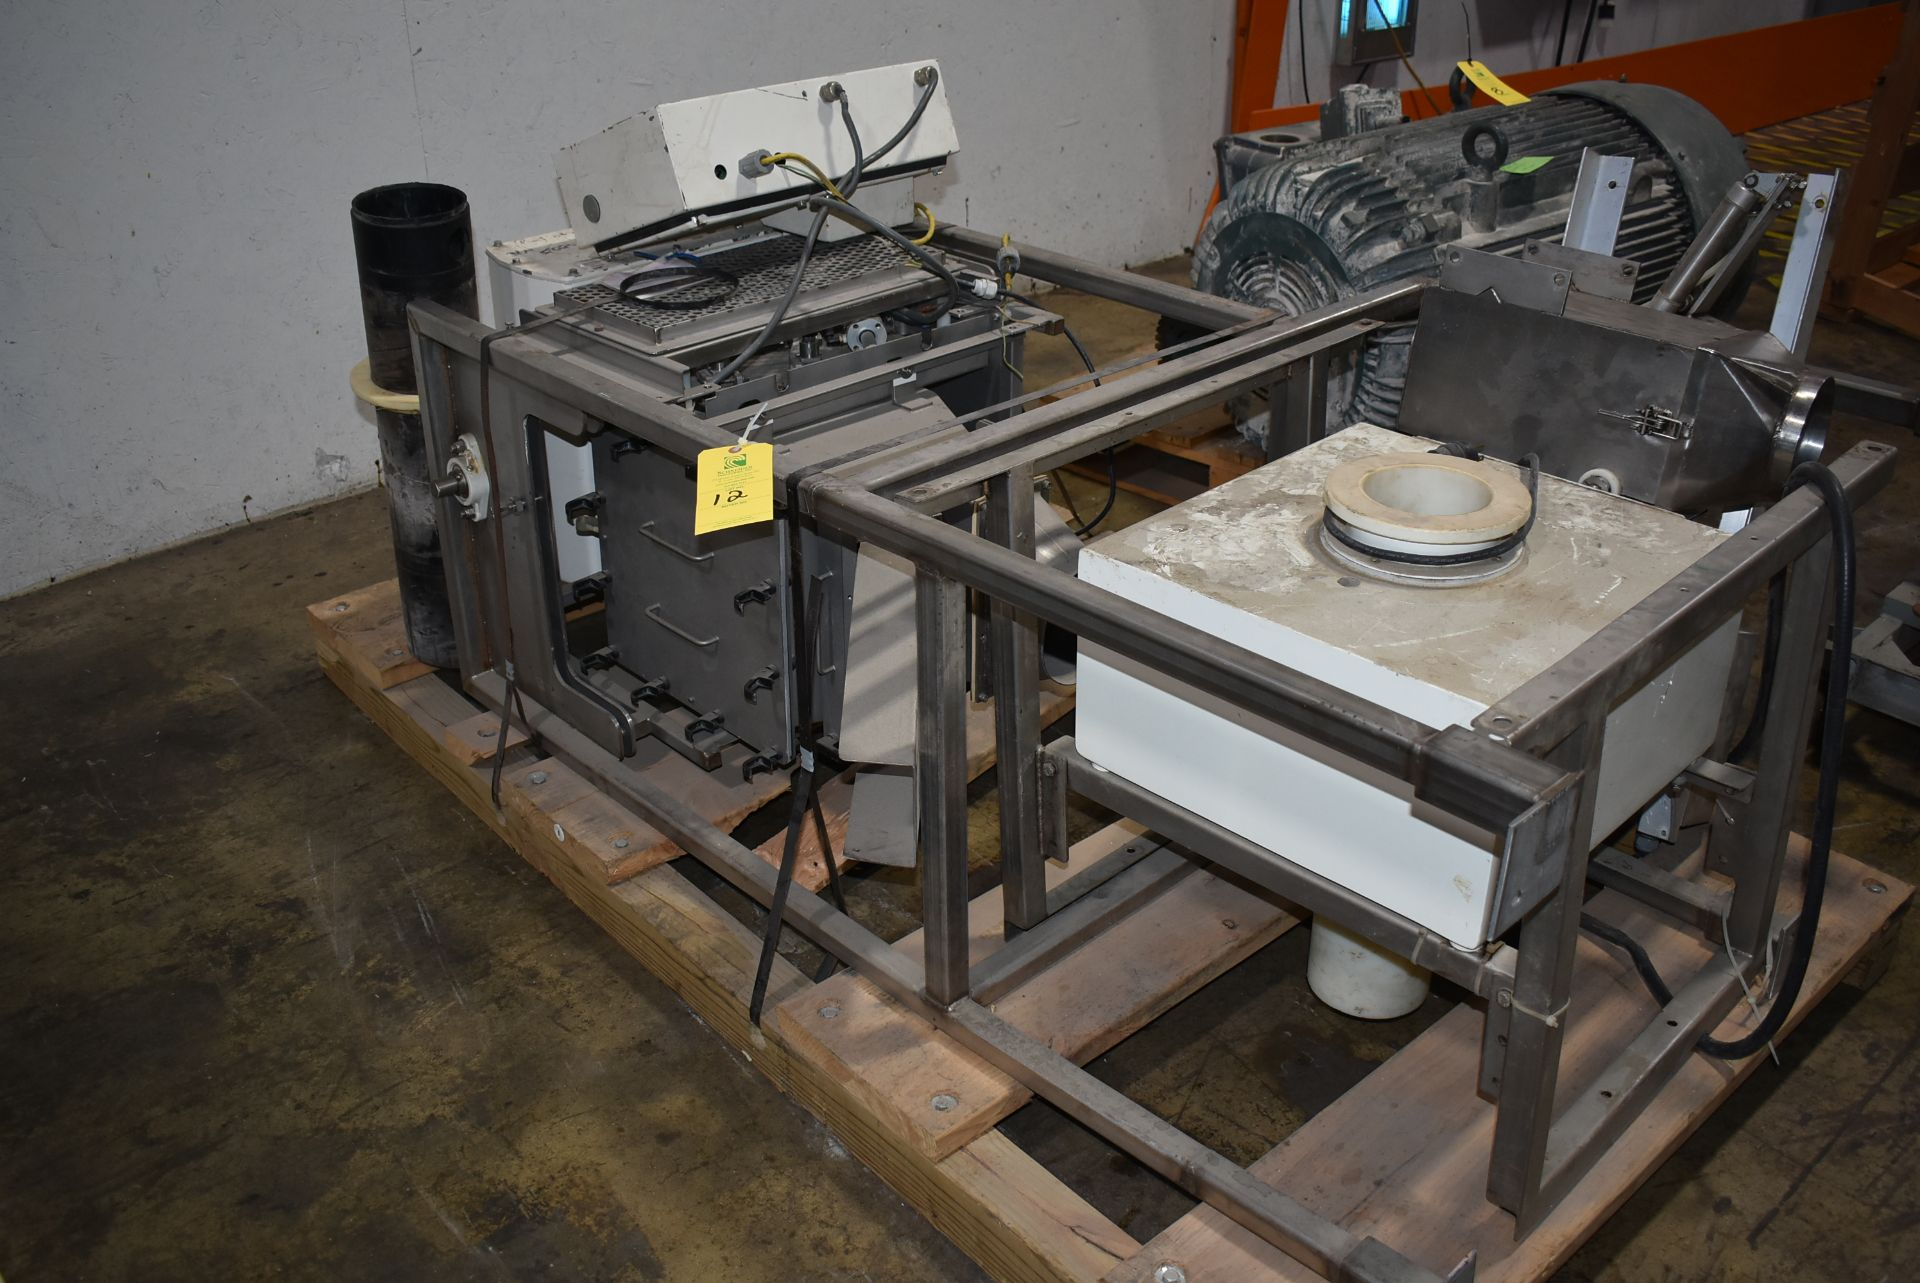 Stainless Steel Hopper, Includes Safeline Plus Power Phase Metal Detector, Thermo Goring Kerr